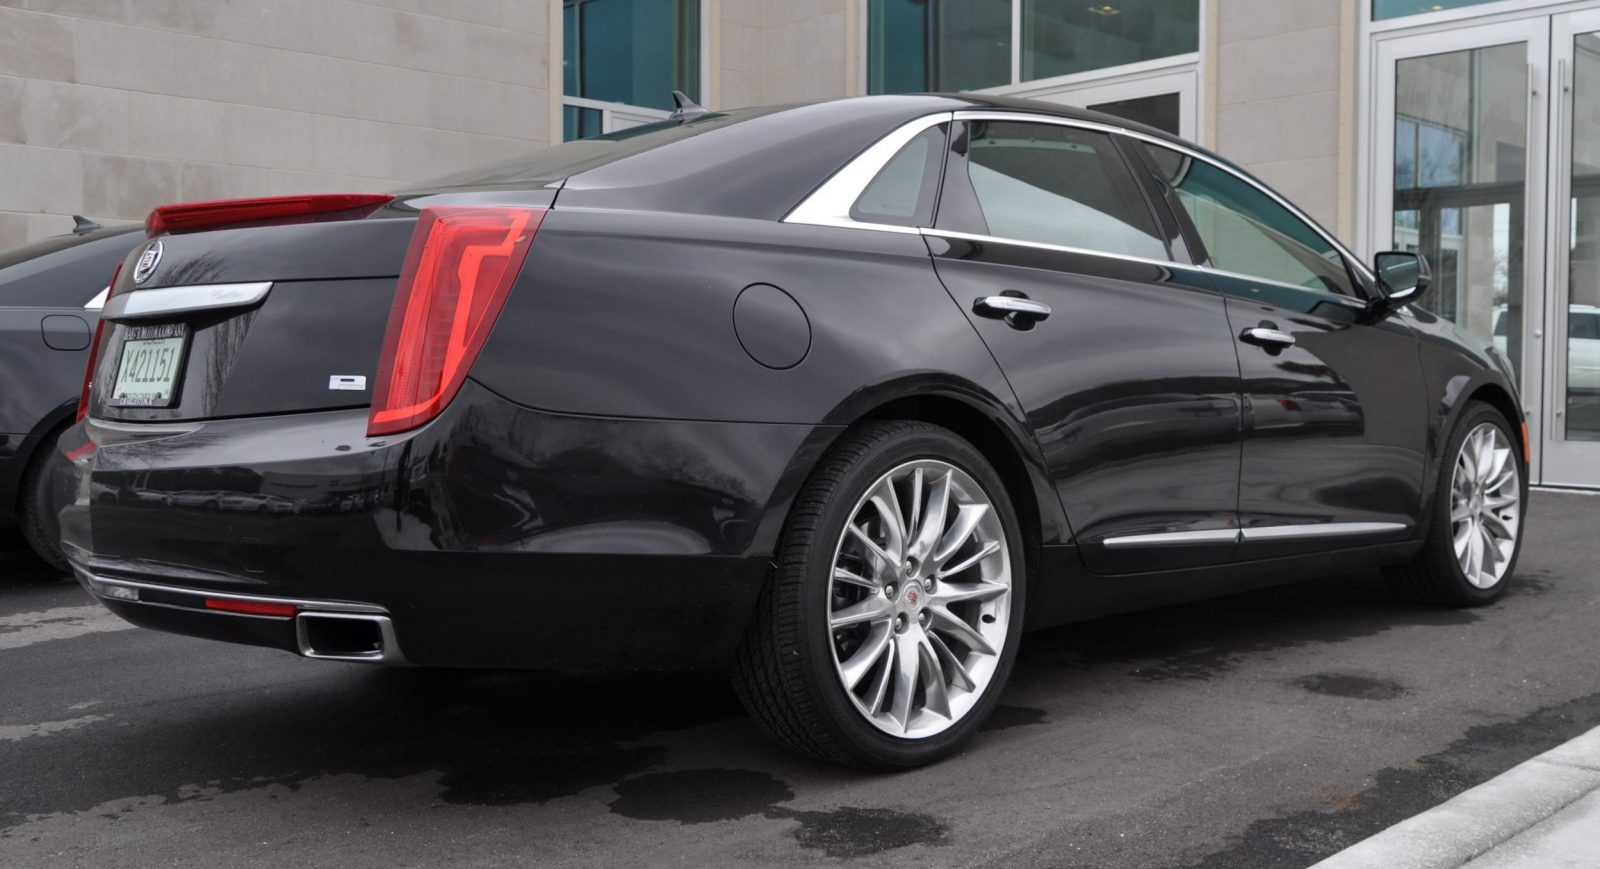 2014 Cadillac XTS4 Platinum Vsport -- First Drive Video and Photos 3